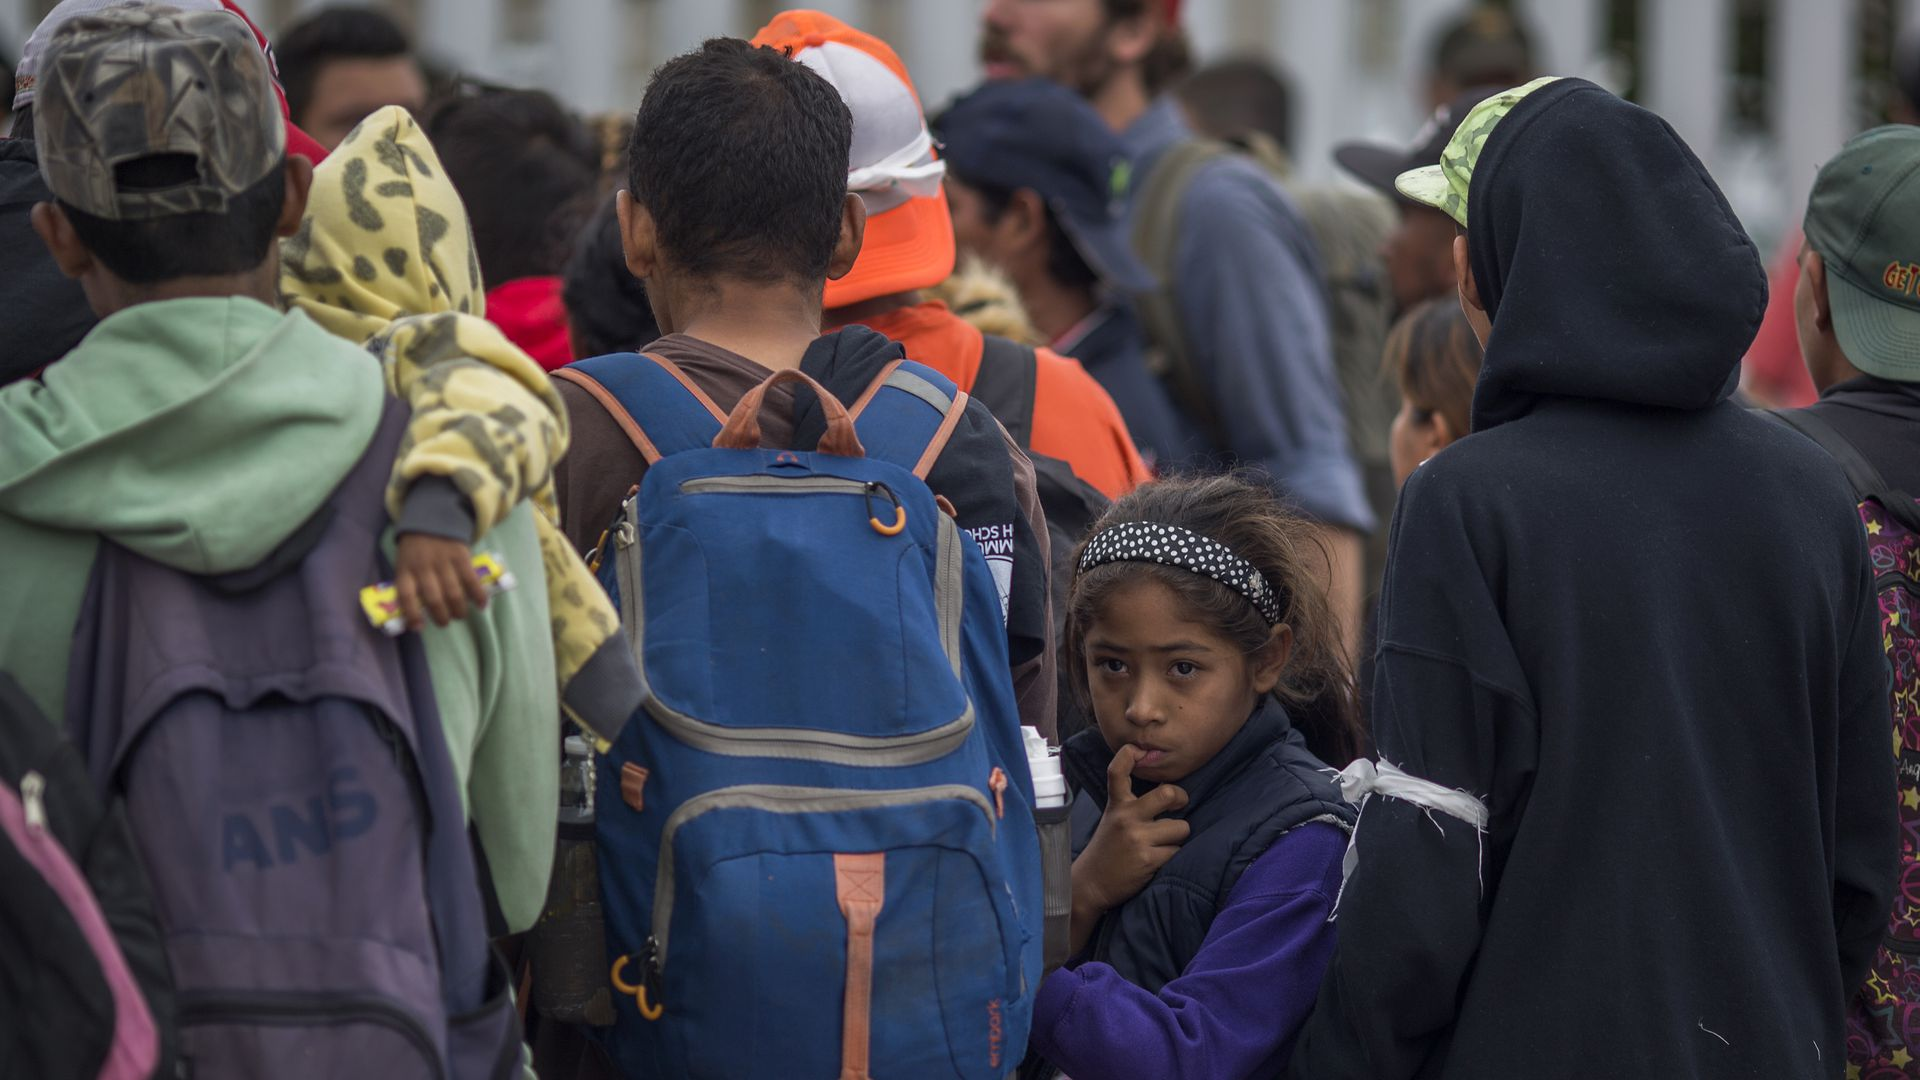 Members of Central American caravan. One young girl looks back with her finger in her mouth